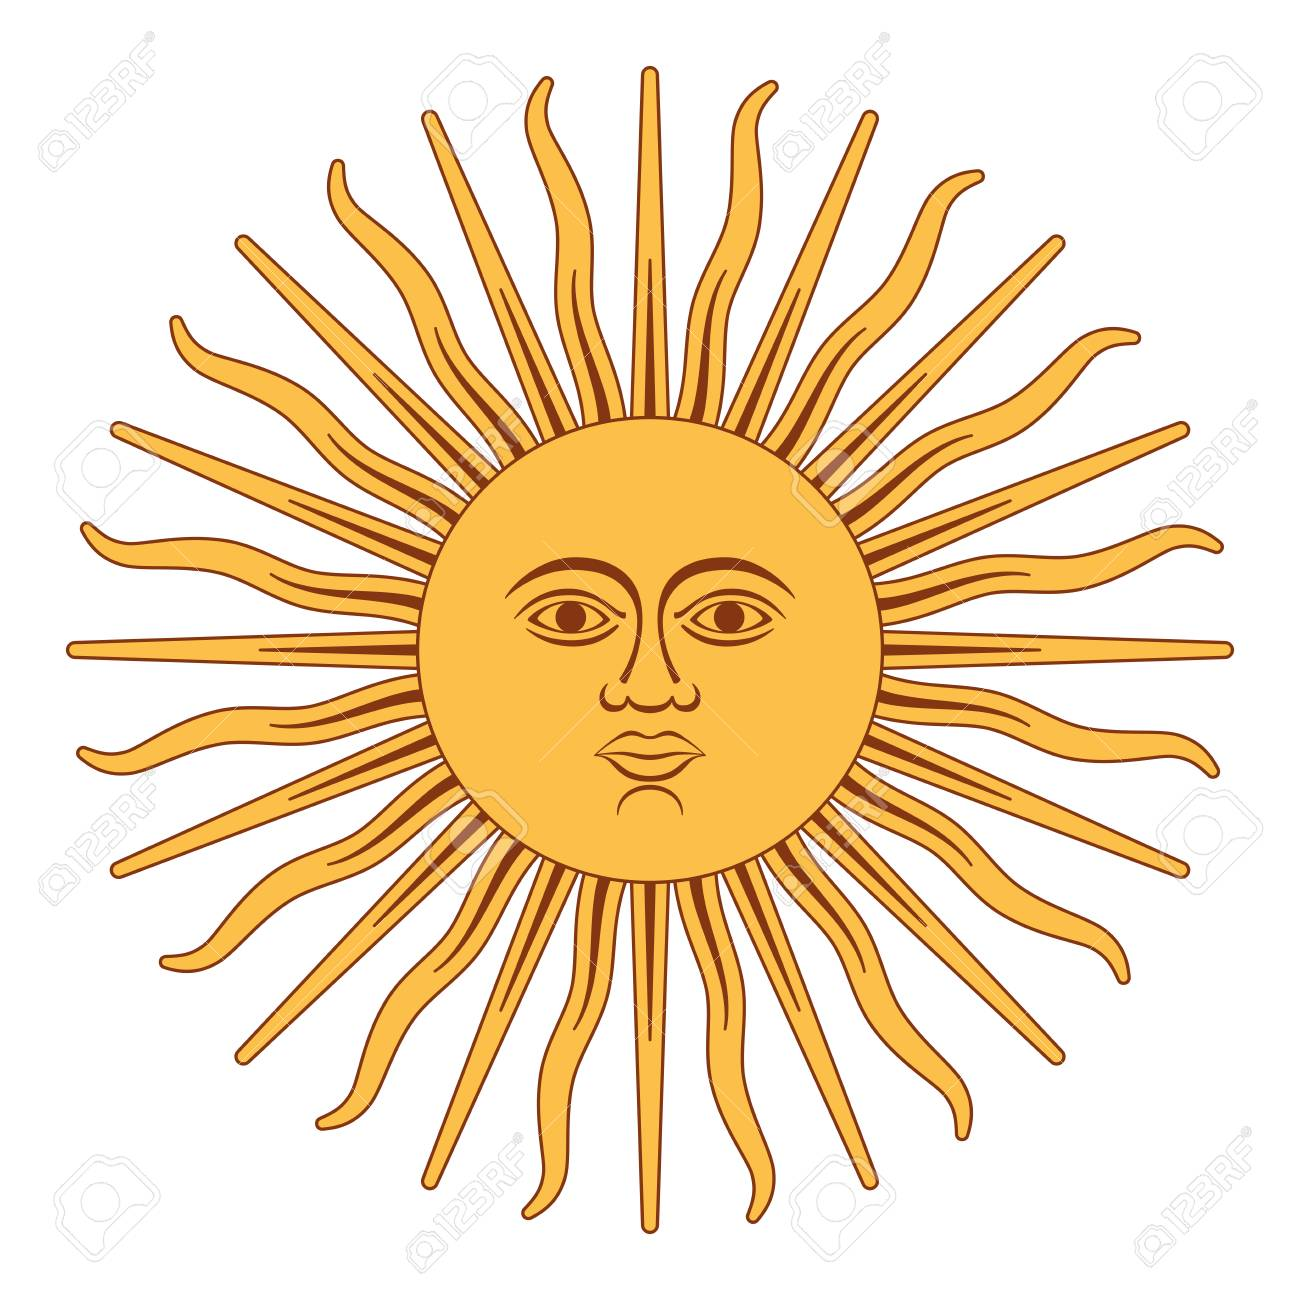 Sun of May, Spanish Sol de Mayo, a national emblem of Argentina